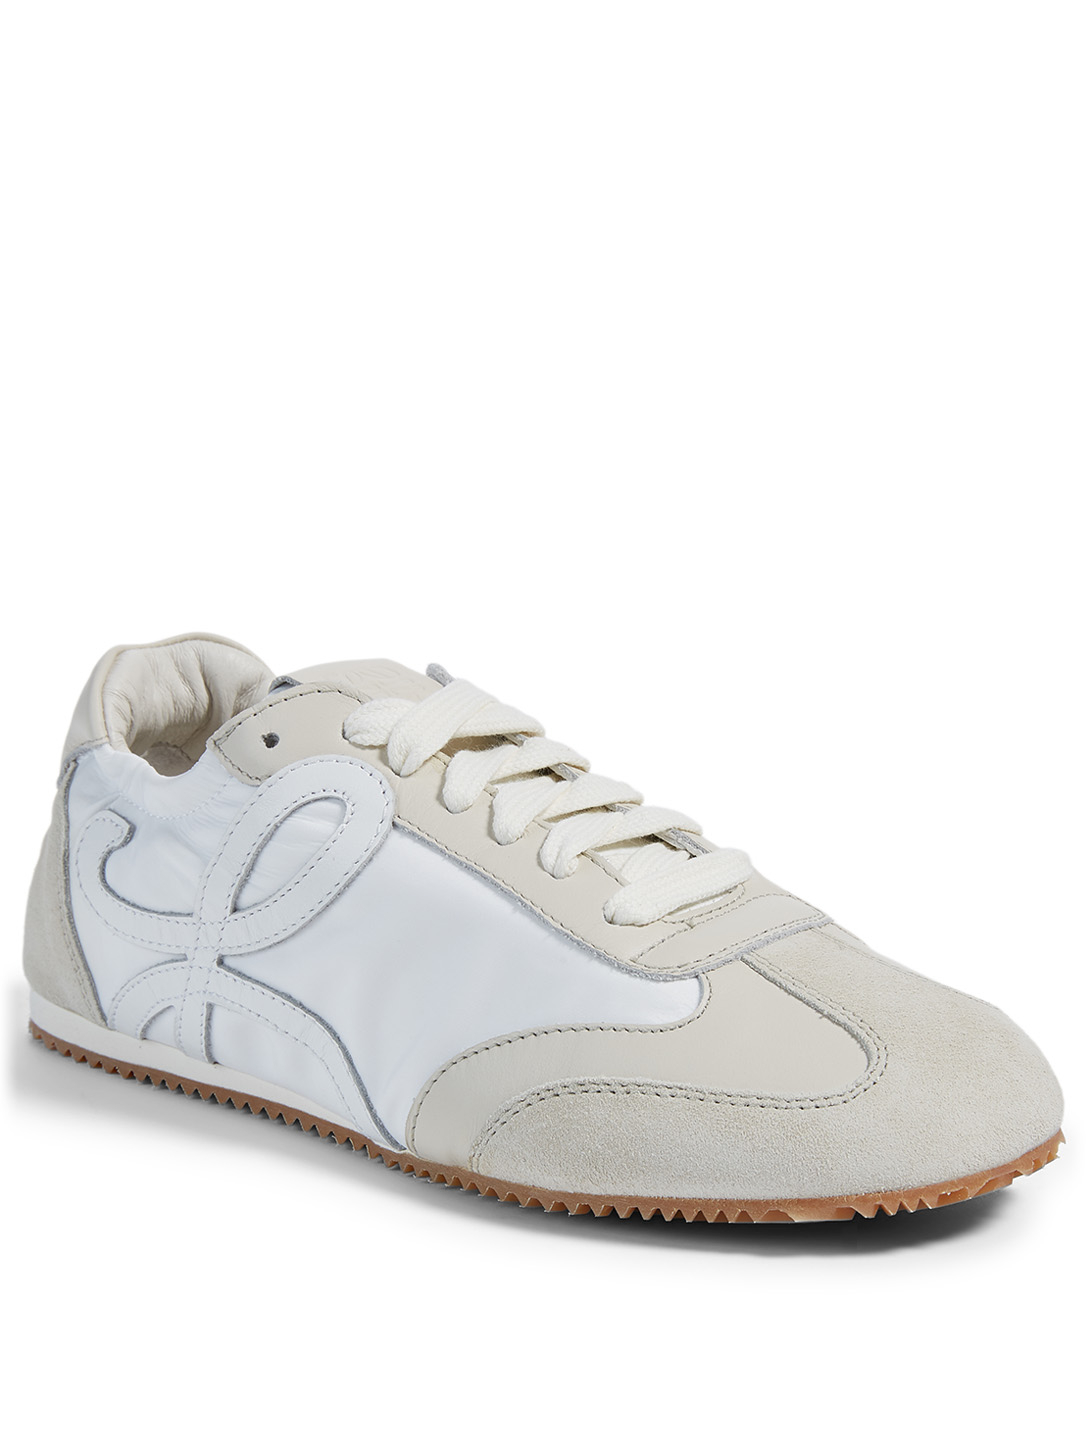 LOEWE Leather And Nylon Ballet Runner Sneakers Women's White